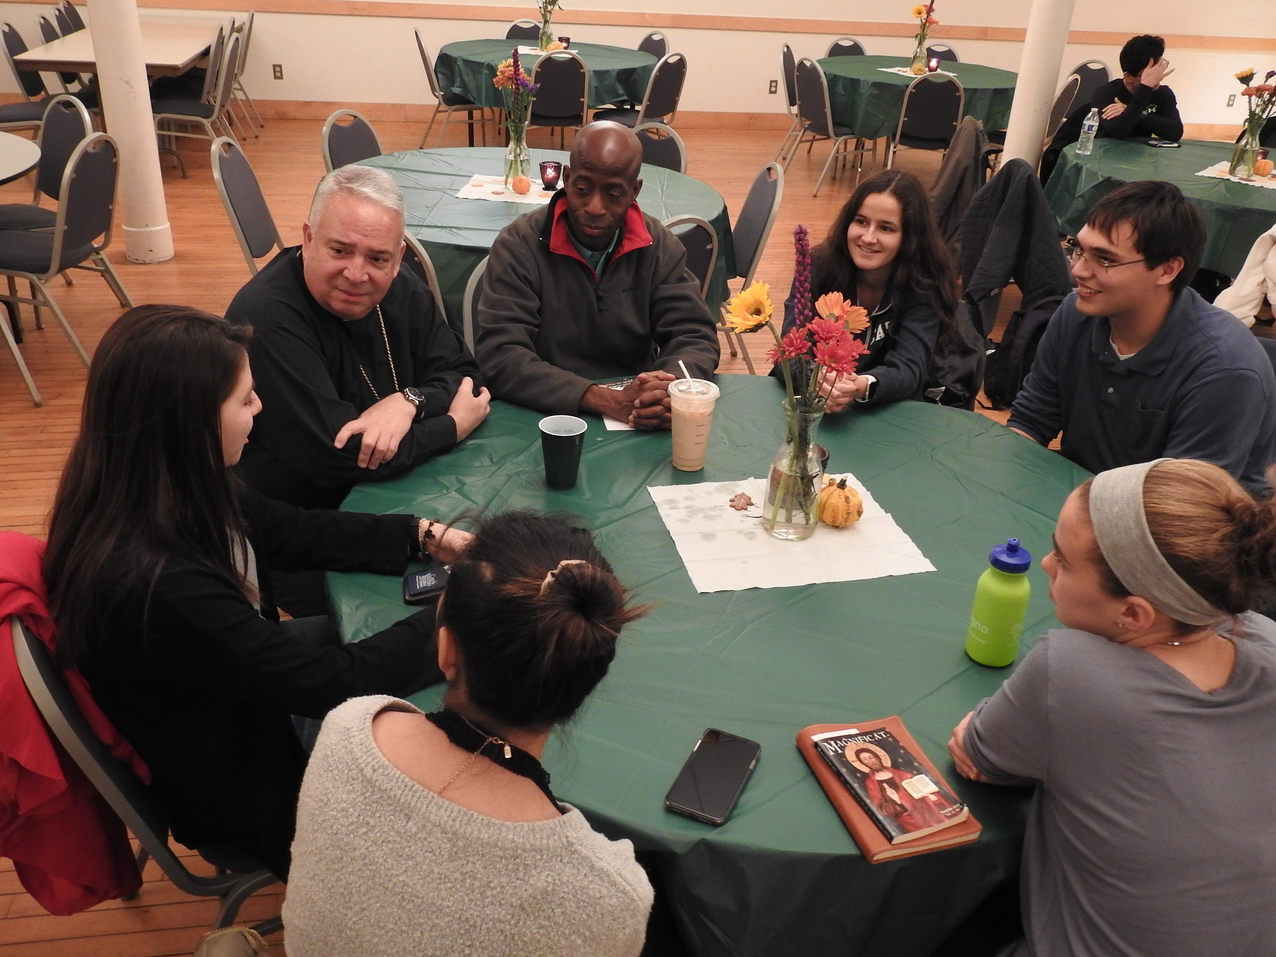 Prayer, food, conversation highlight bishop's visit with Case Catholic Campus Ministry